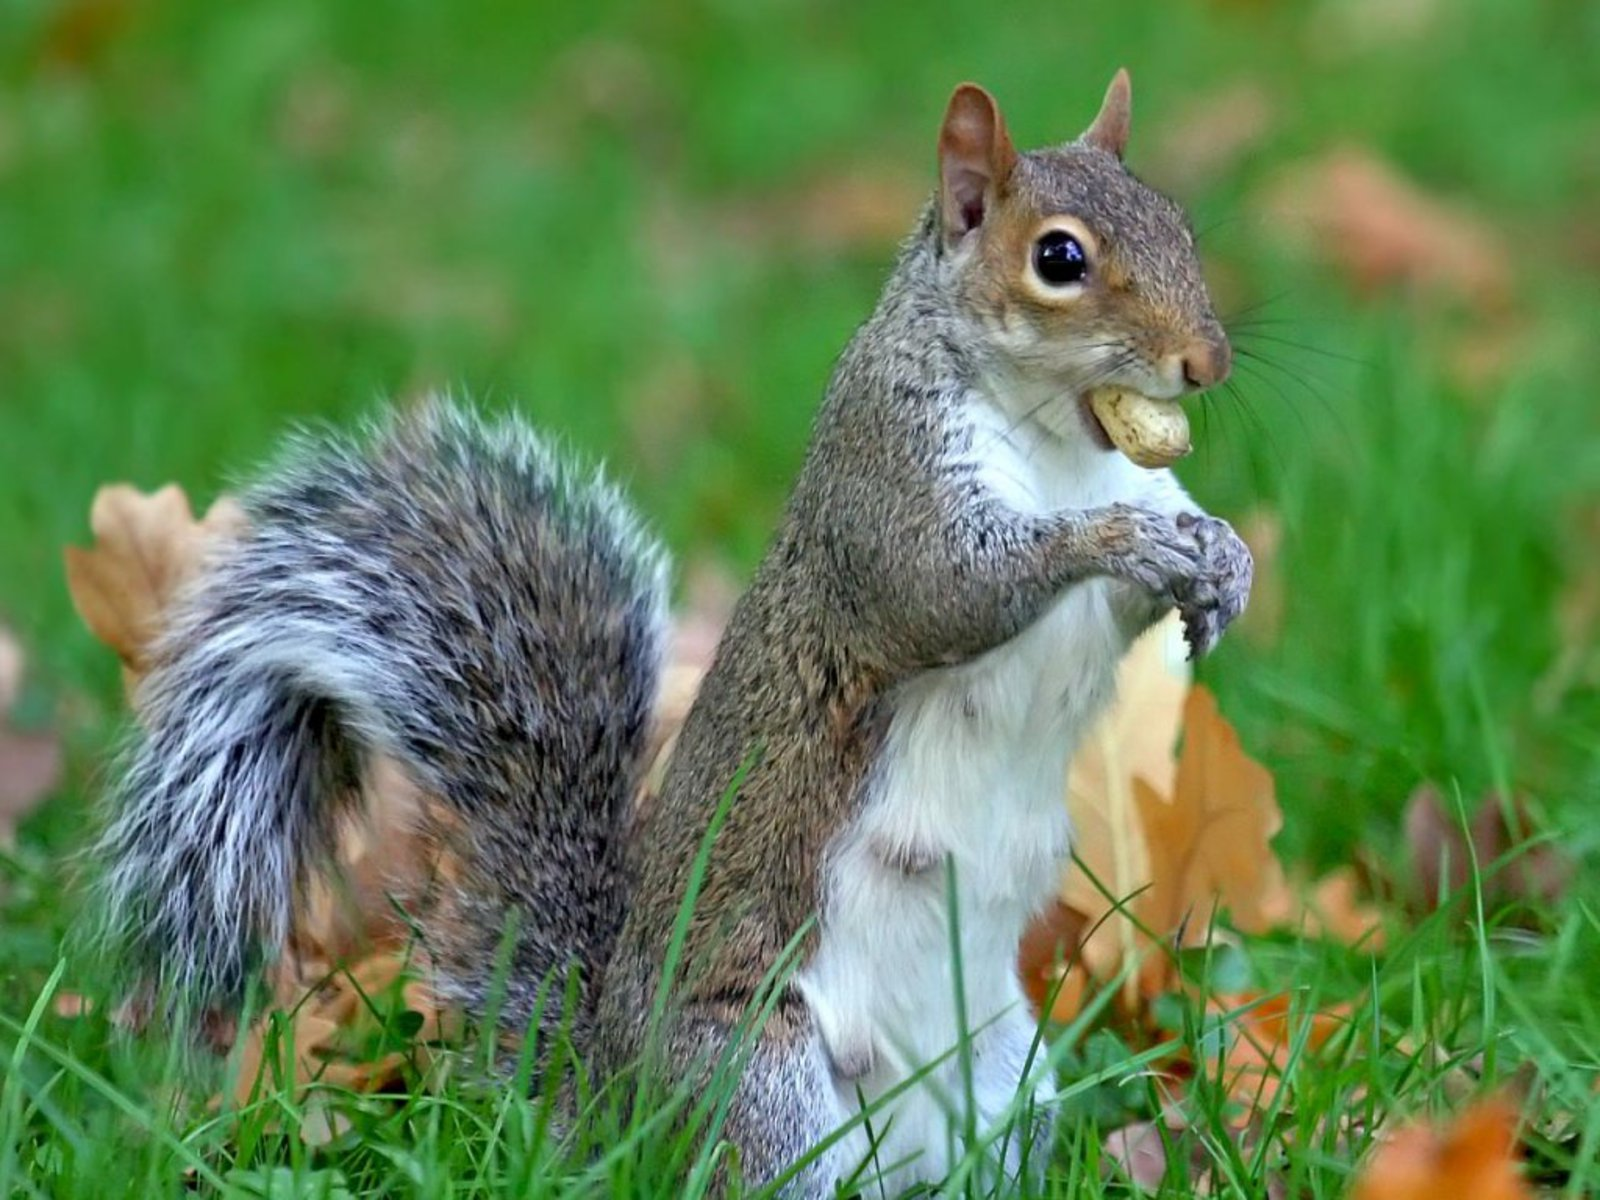 Migi mega entertainment animals wallpapers the best - Funny squirrel backgrounds ...